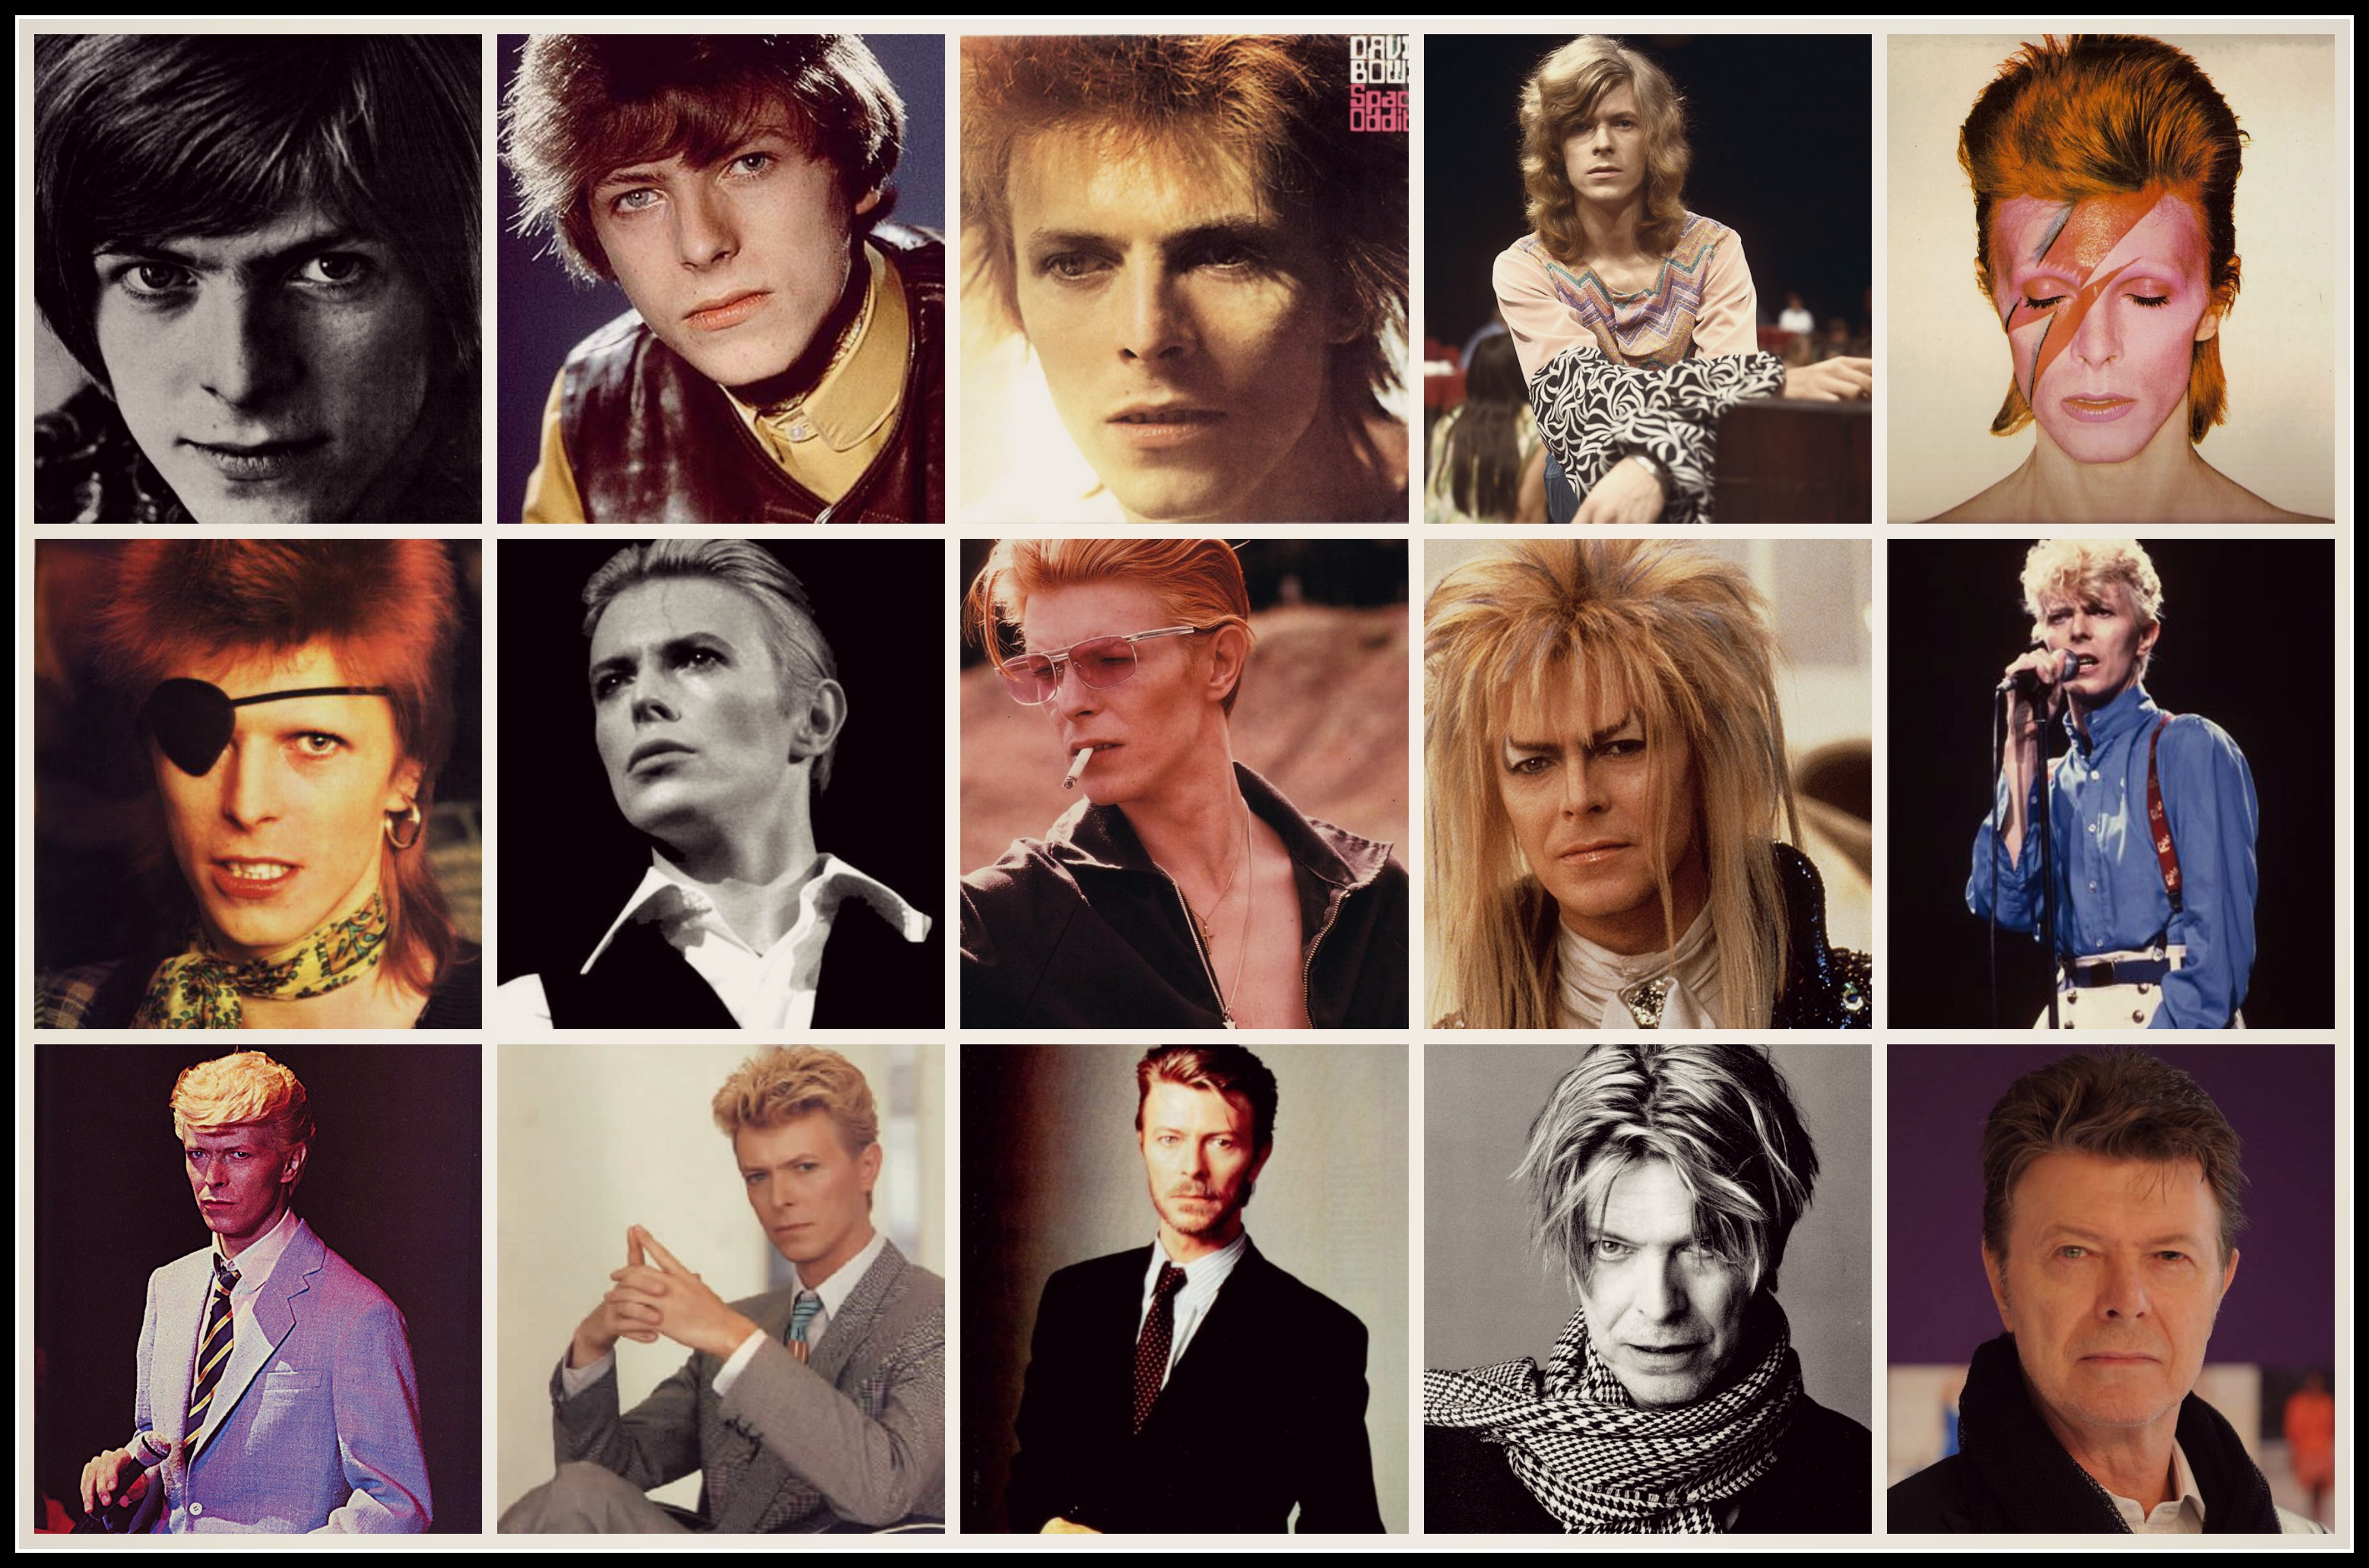 david bowie rock legend